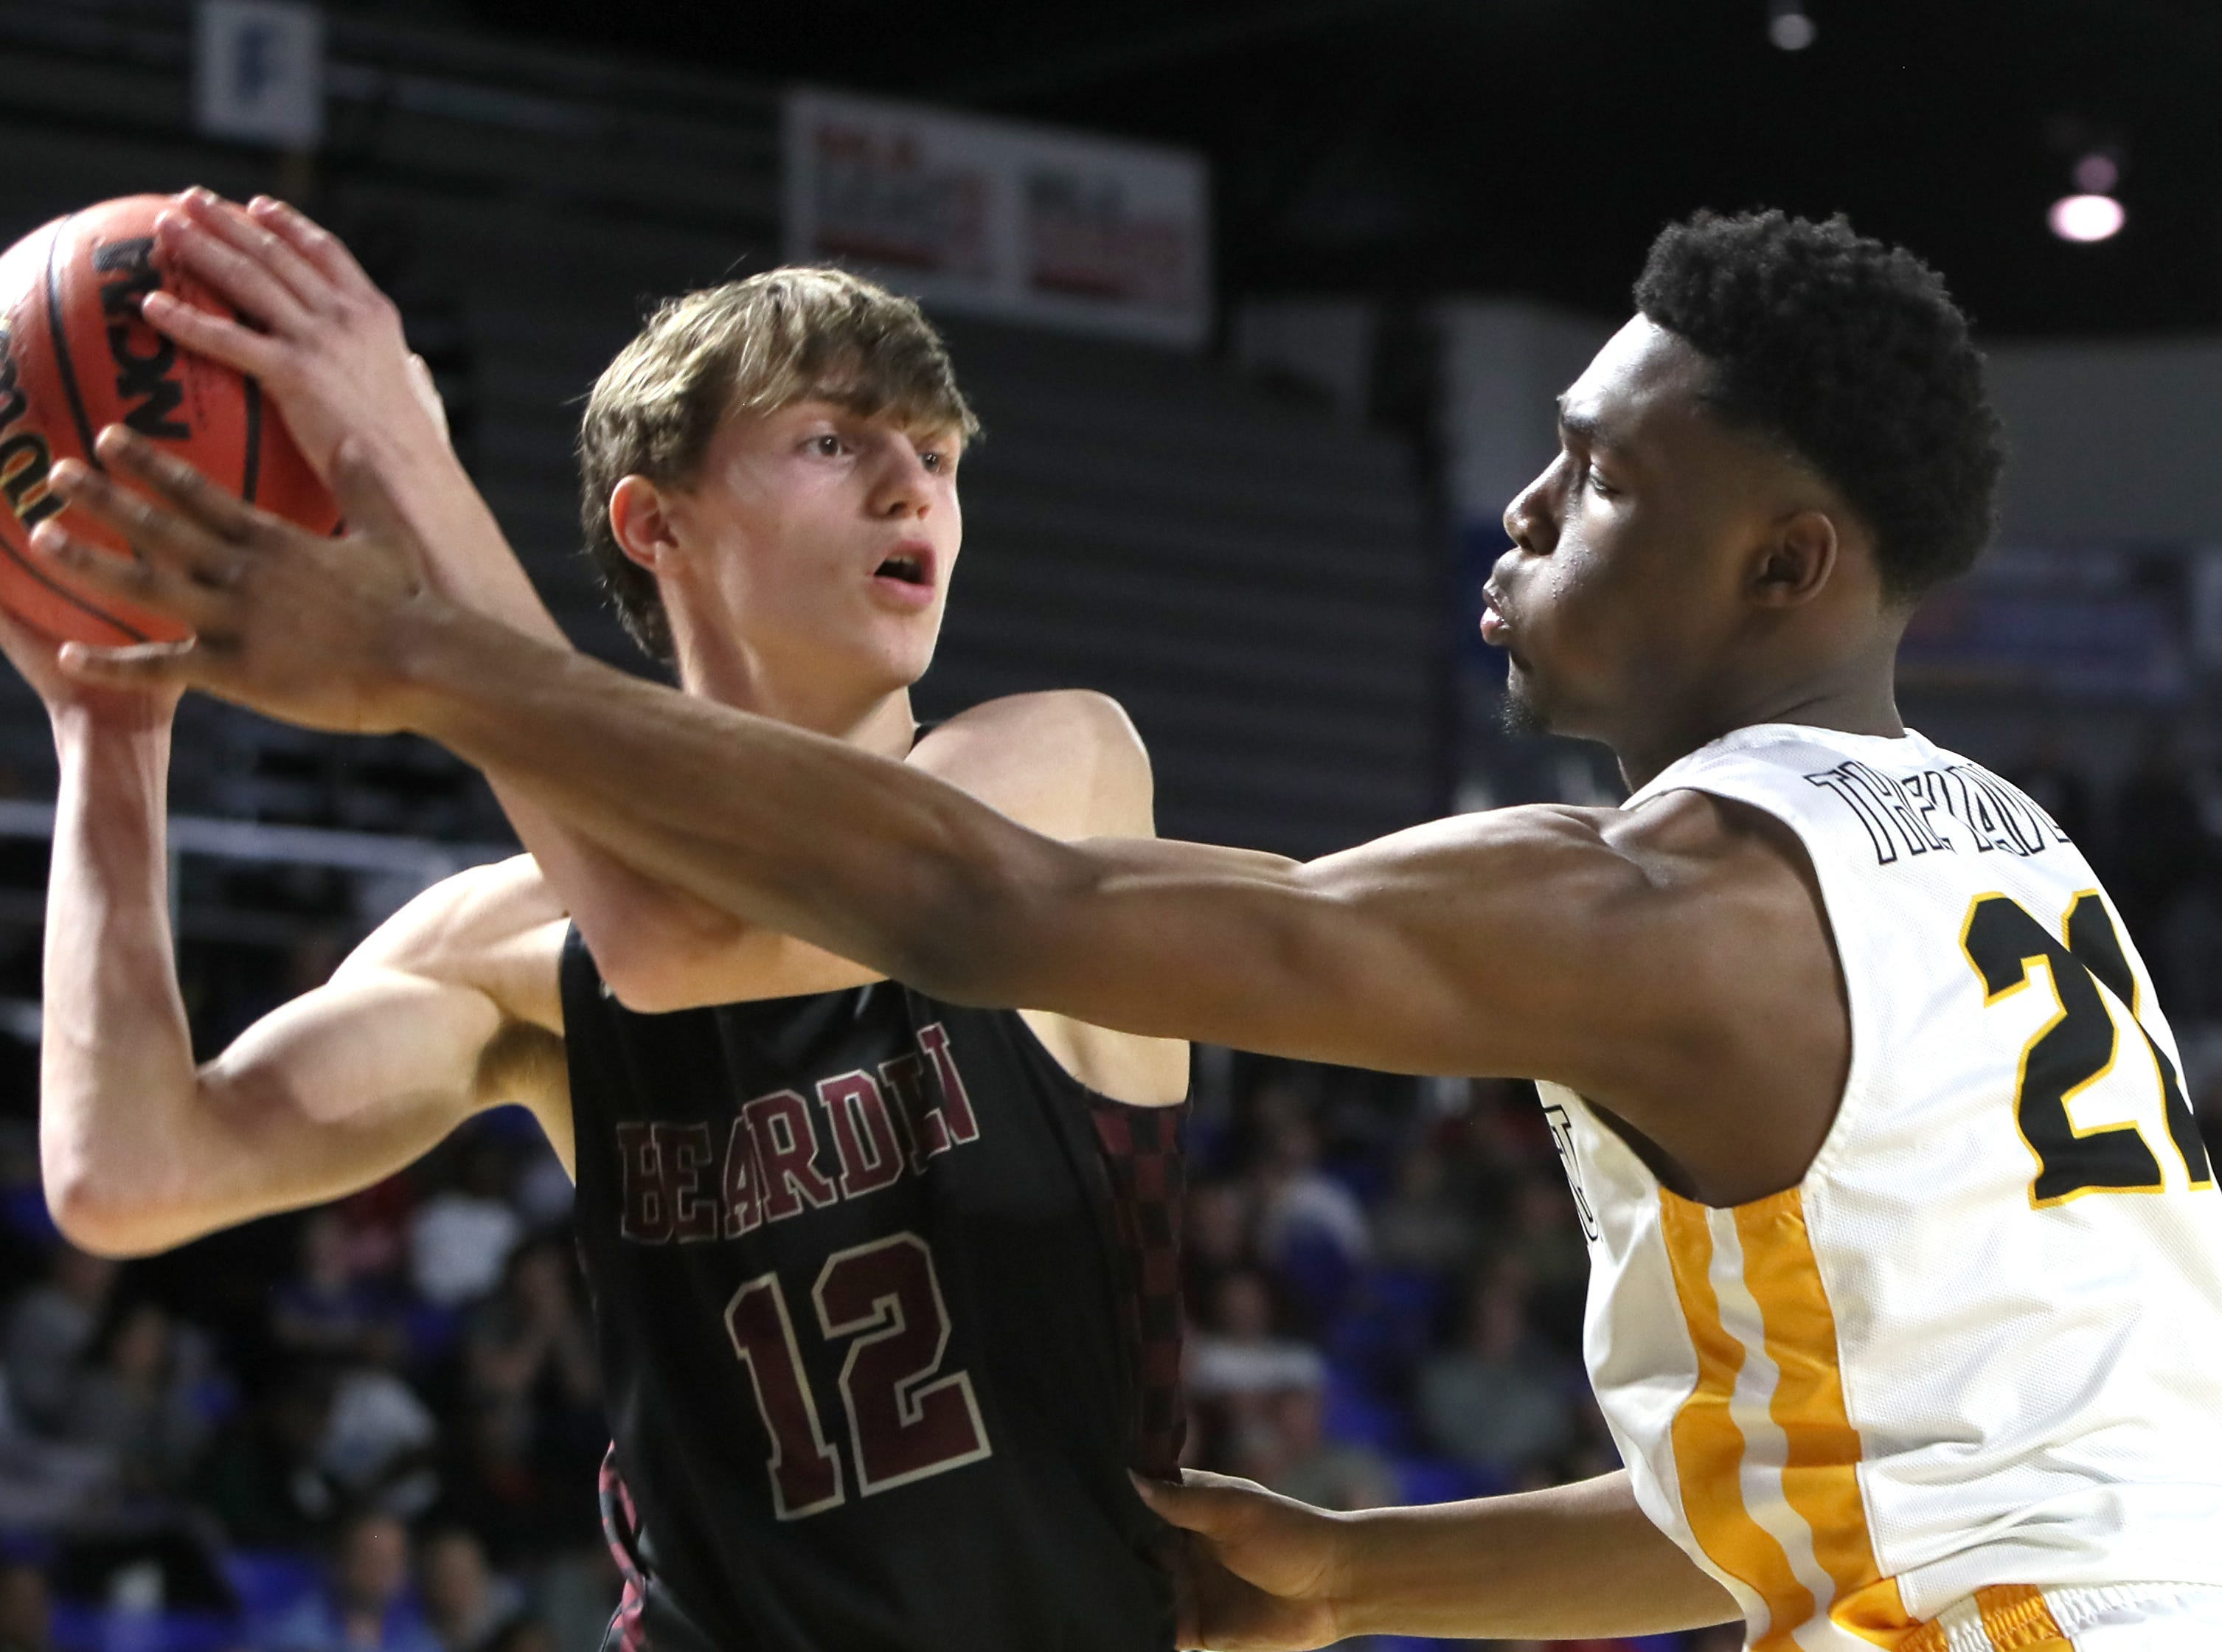 Whitehaven's Devine Owens defends Bearden's Hayden Treadwell during the Class AAA boys basketball state semifinal at the Murphy Center in Murfreesboro, Tenn. on Friday, March 15, 2019.